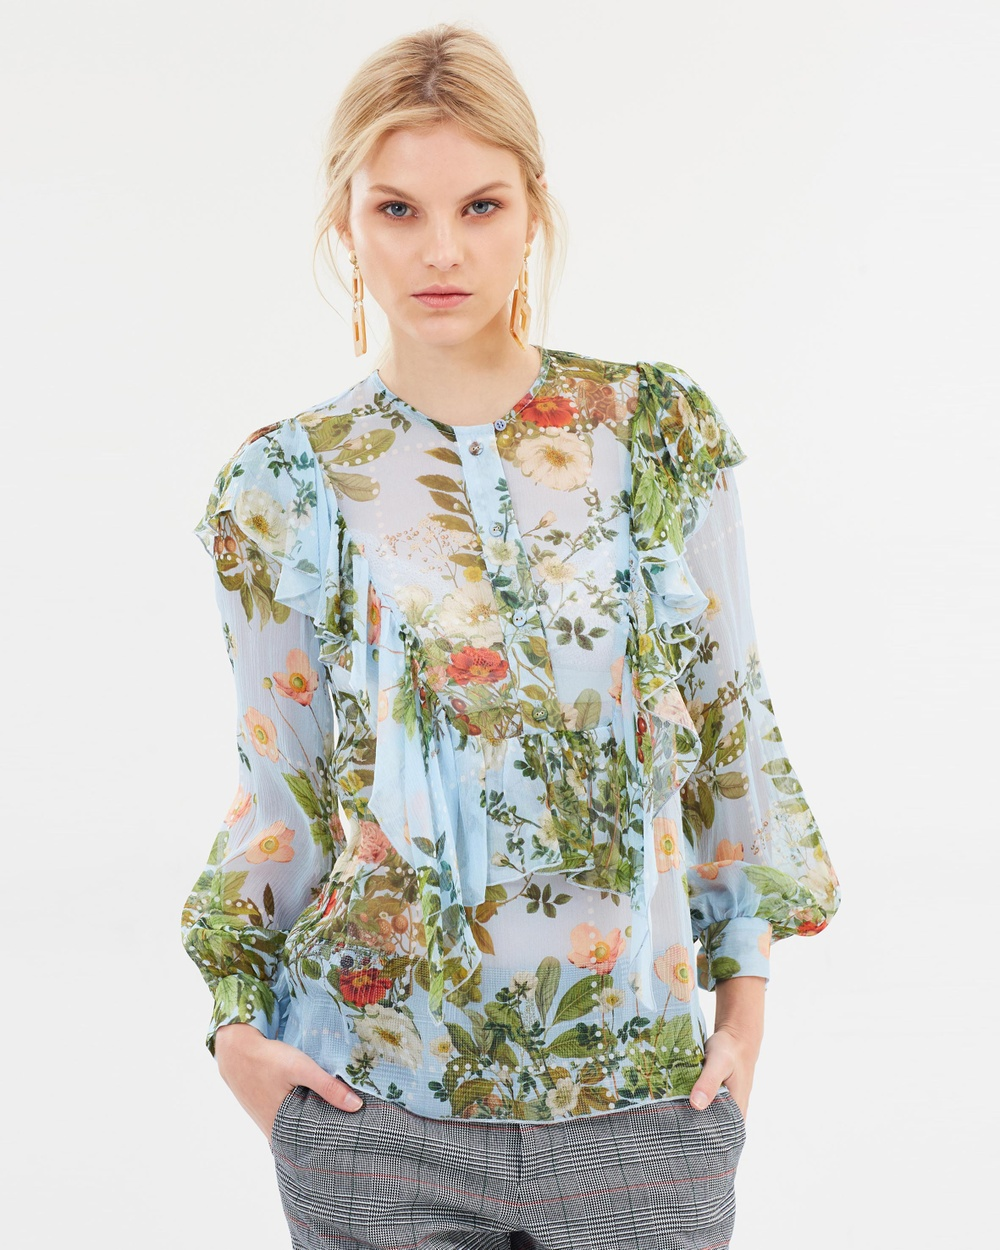 Karen Walker Whimsy Shirt Tops Blue Multi Whimsy Shirt